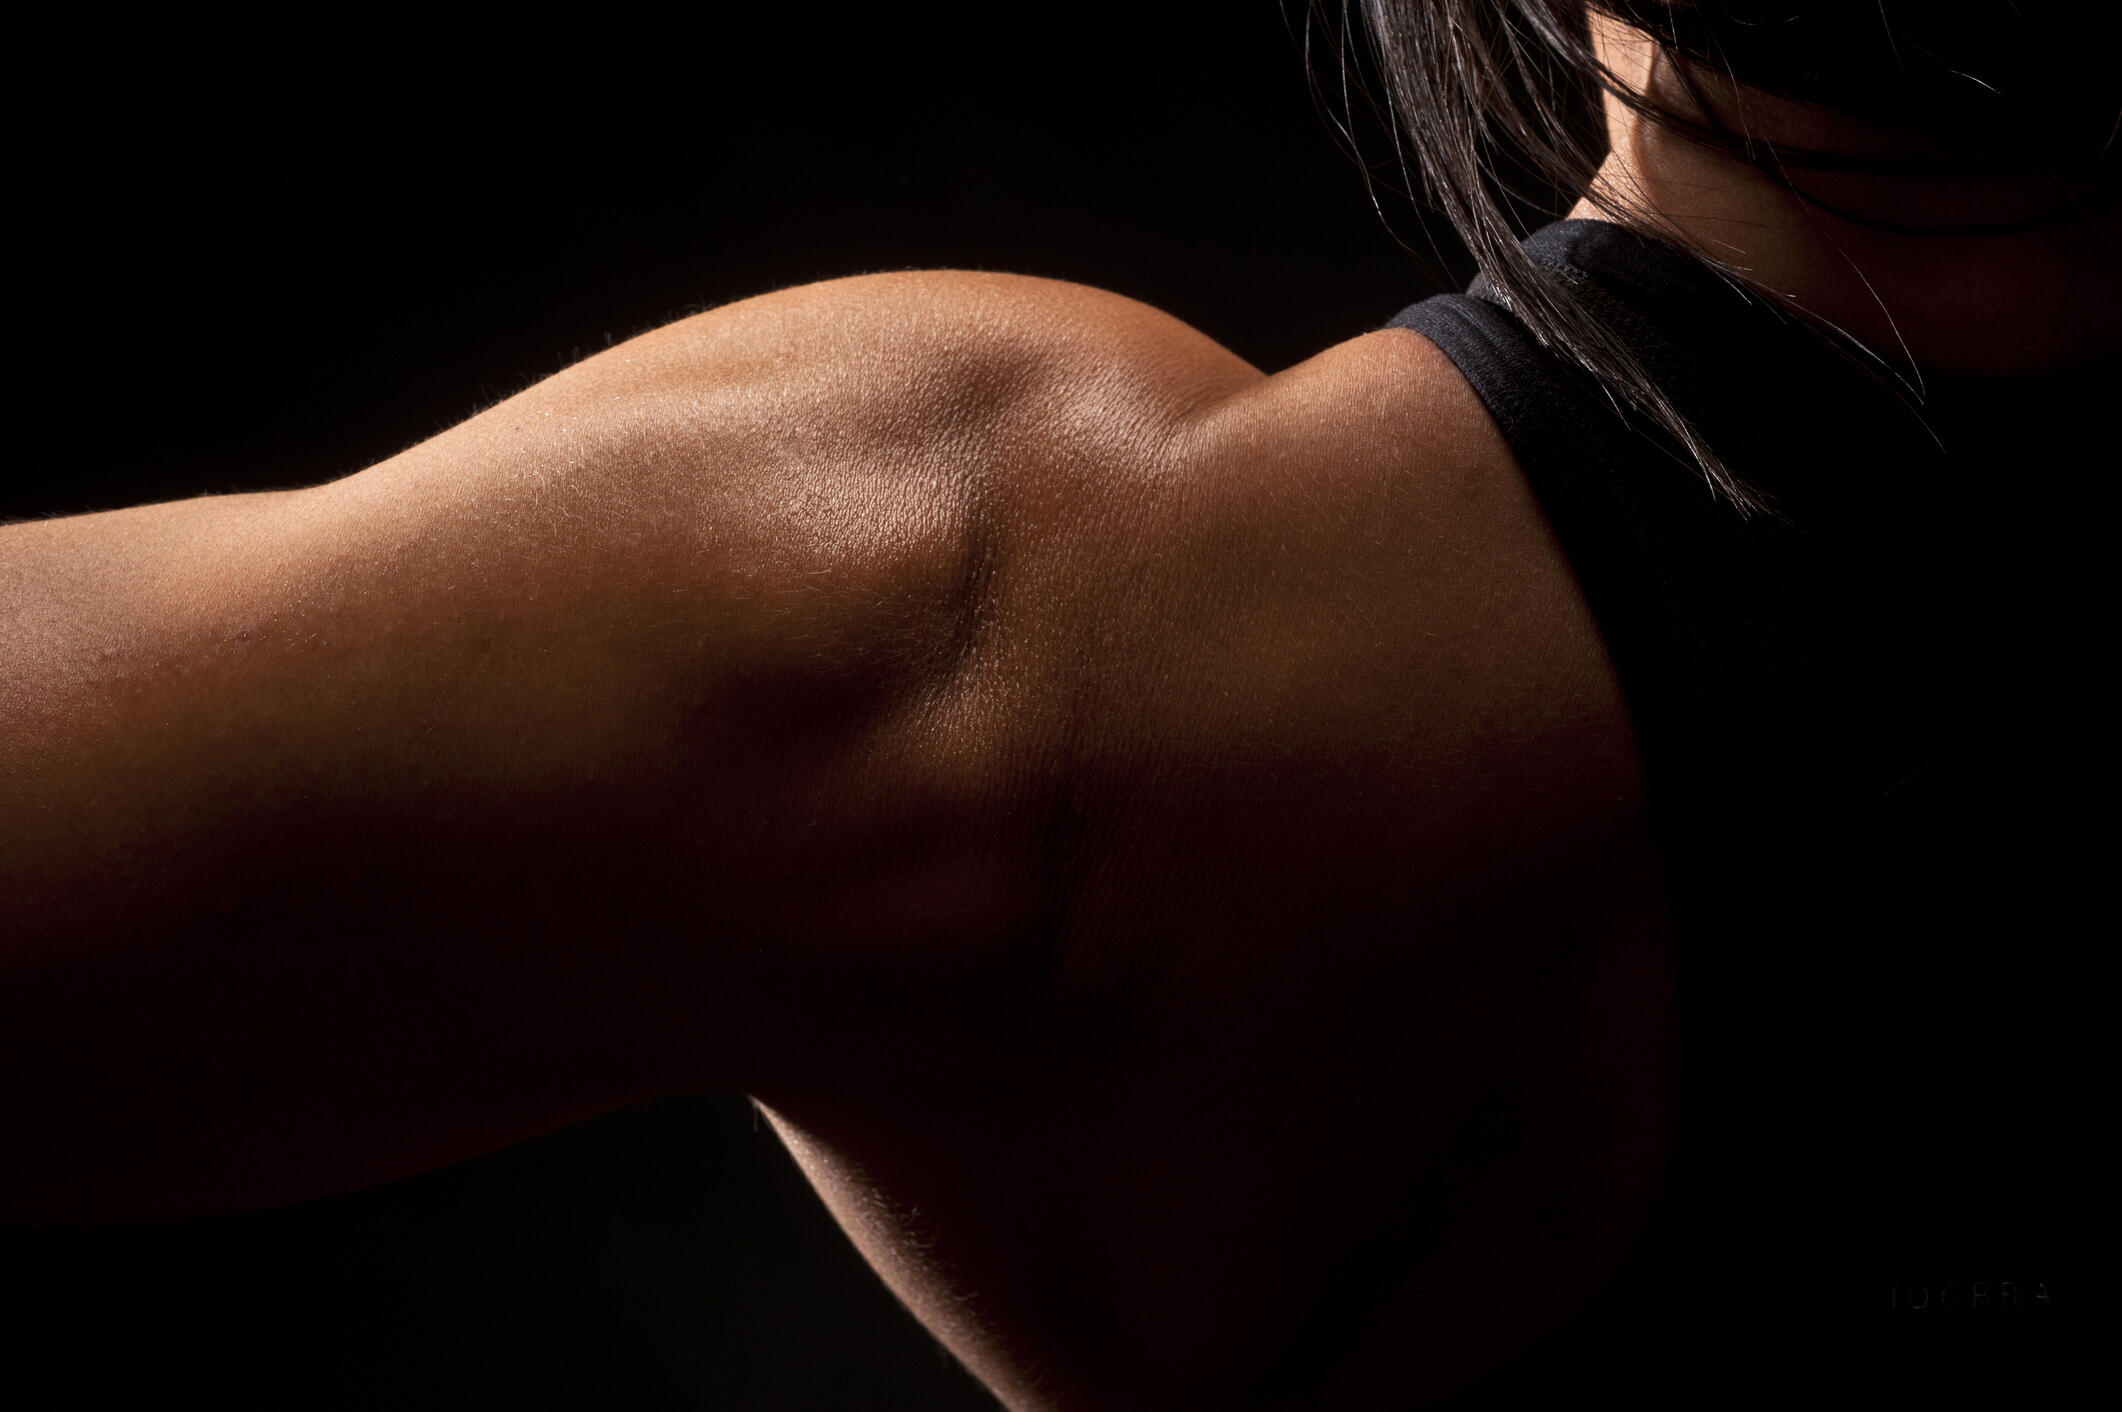 5 best shoulder exercises for building muscle in your upper body     - CNET